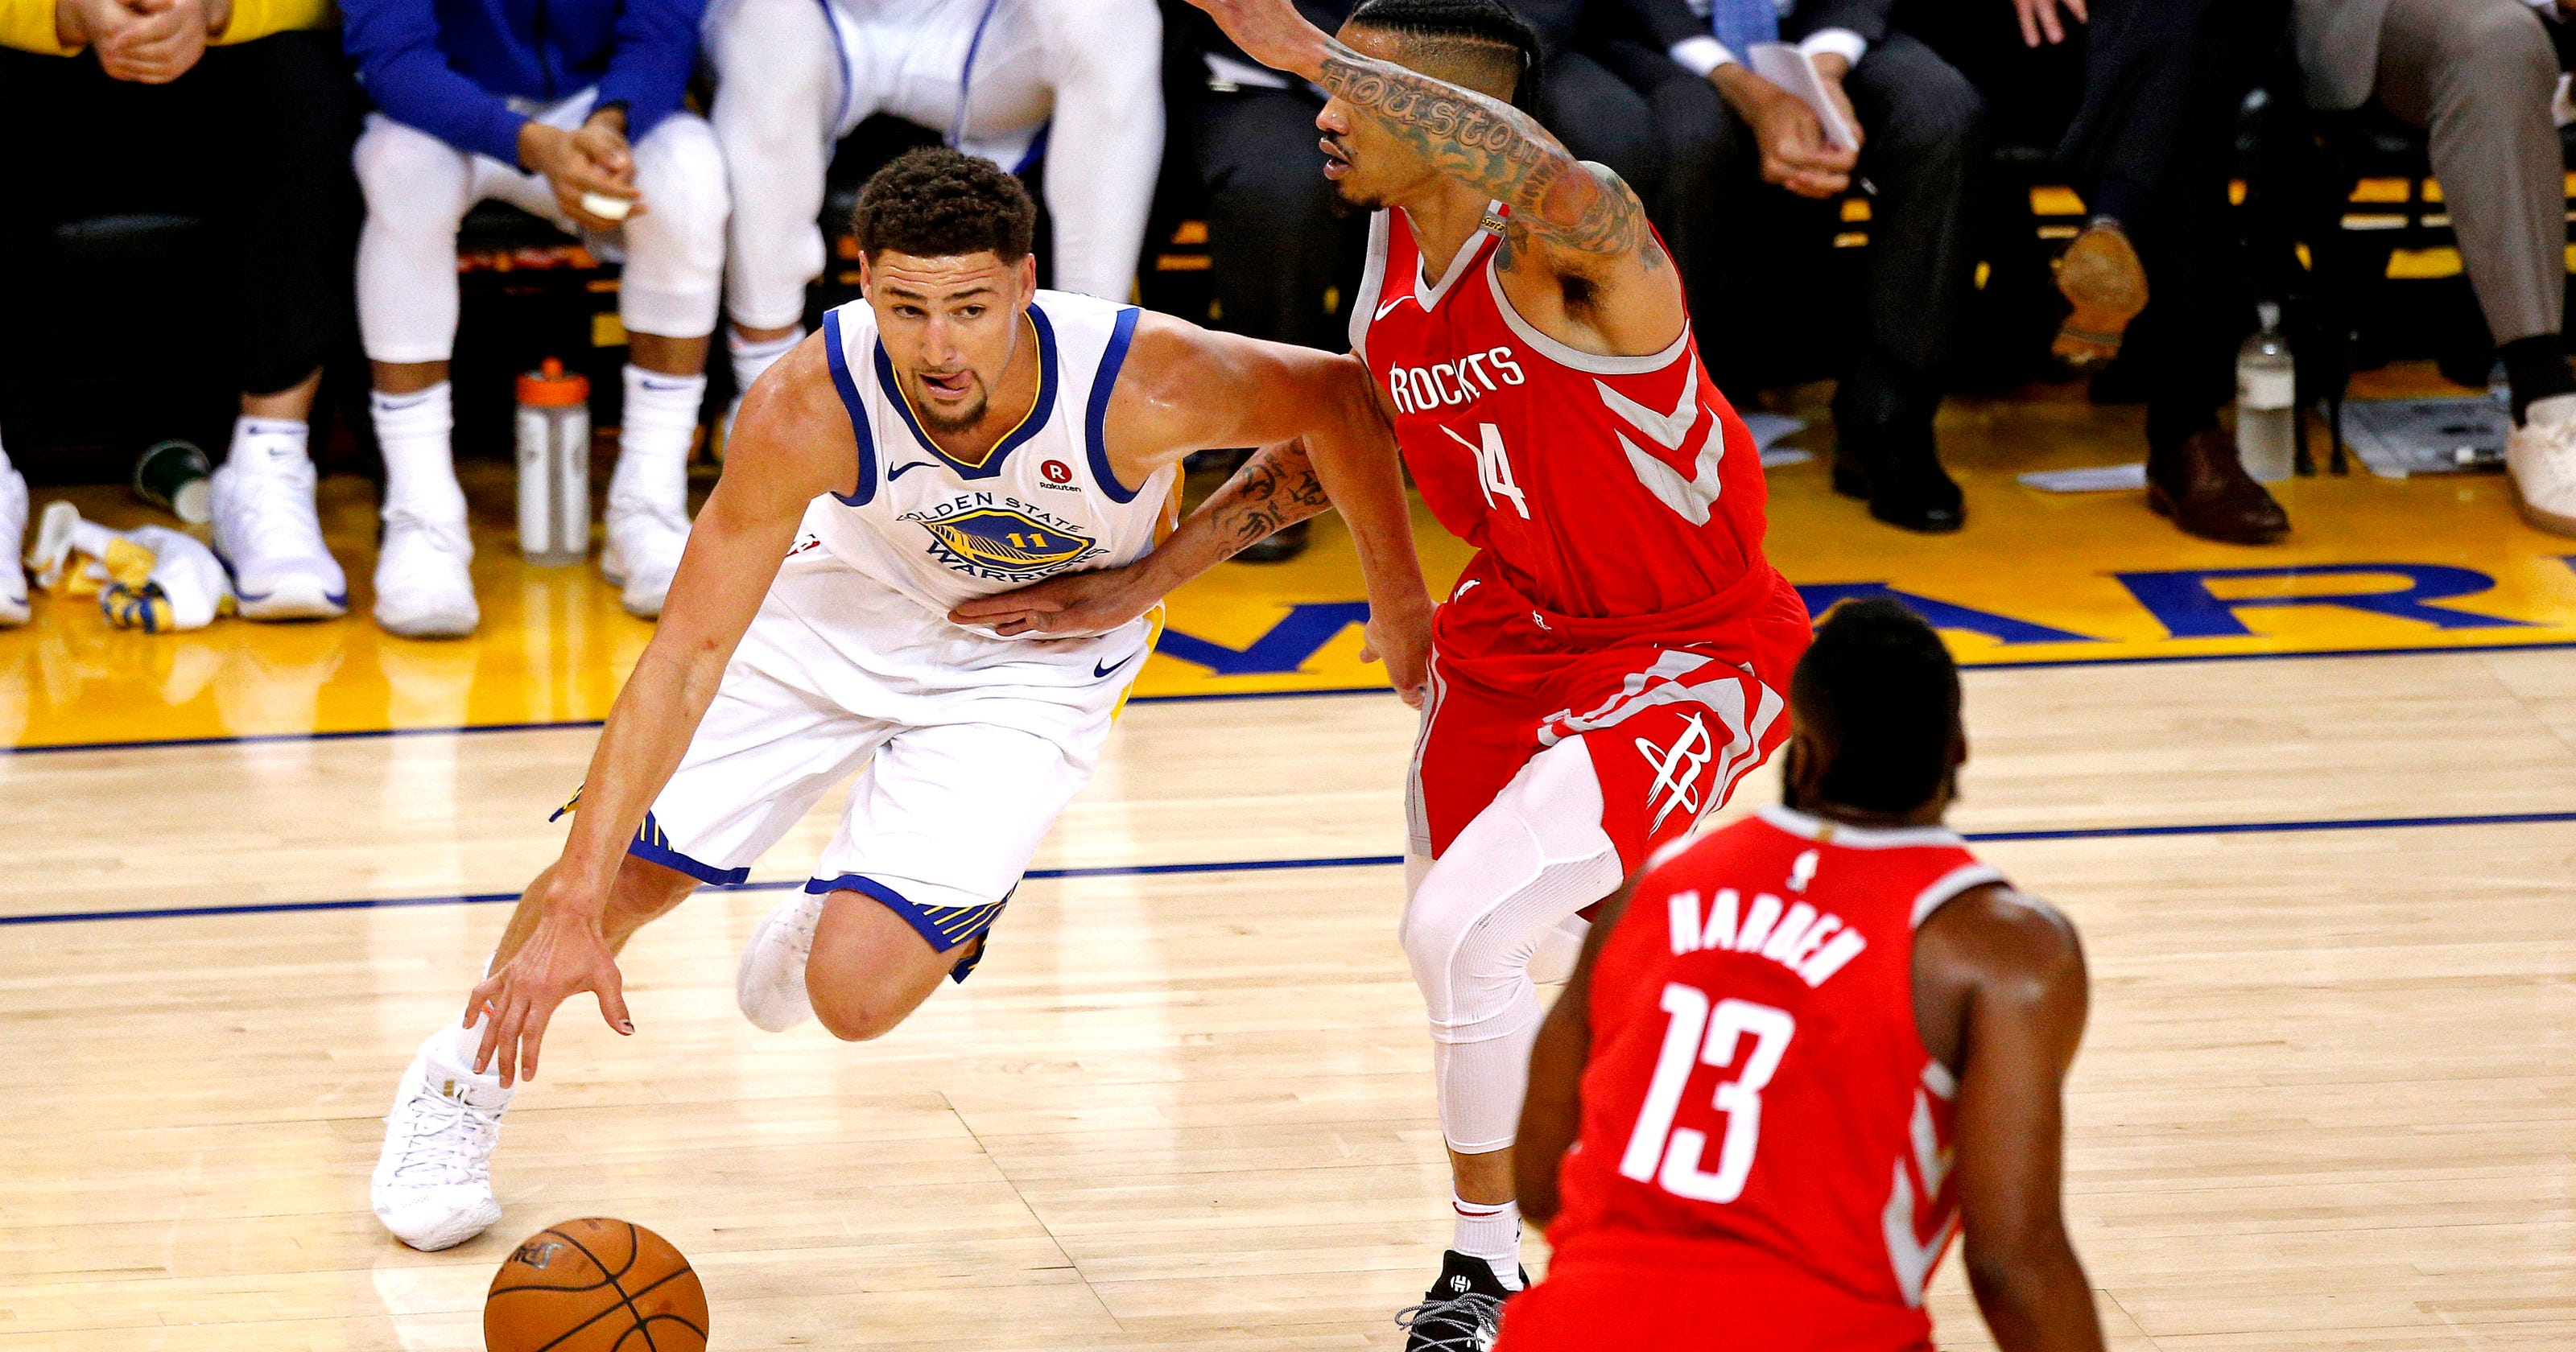 db449fb5963e Warriors  Klay Thompson lights up Rockets to force Game 7